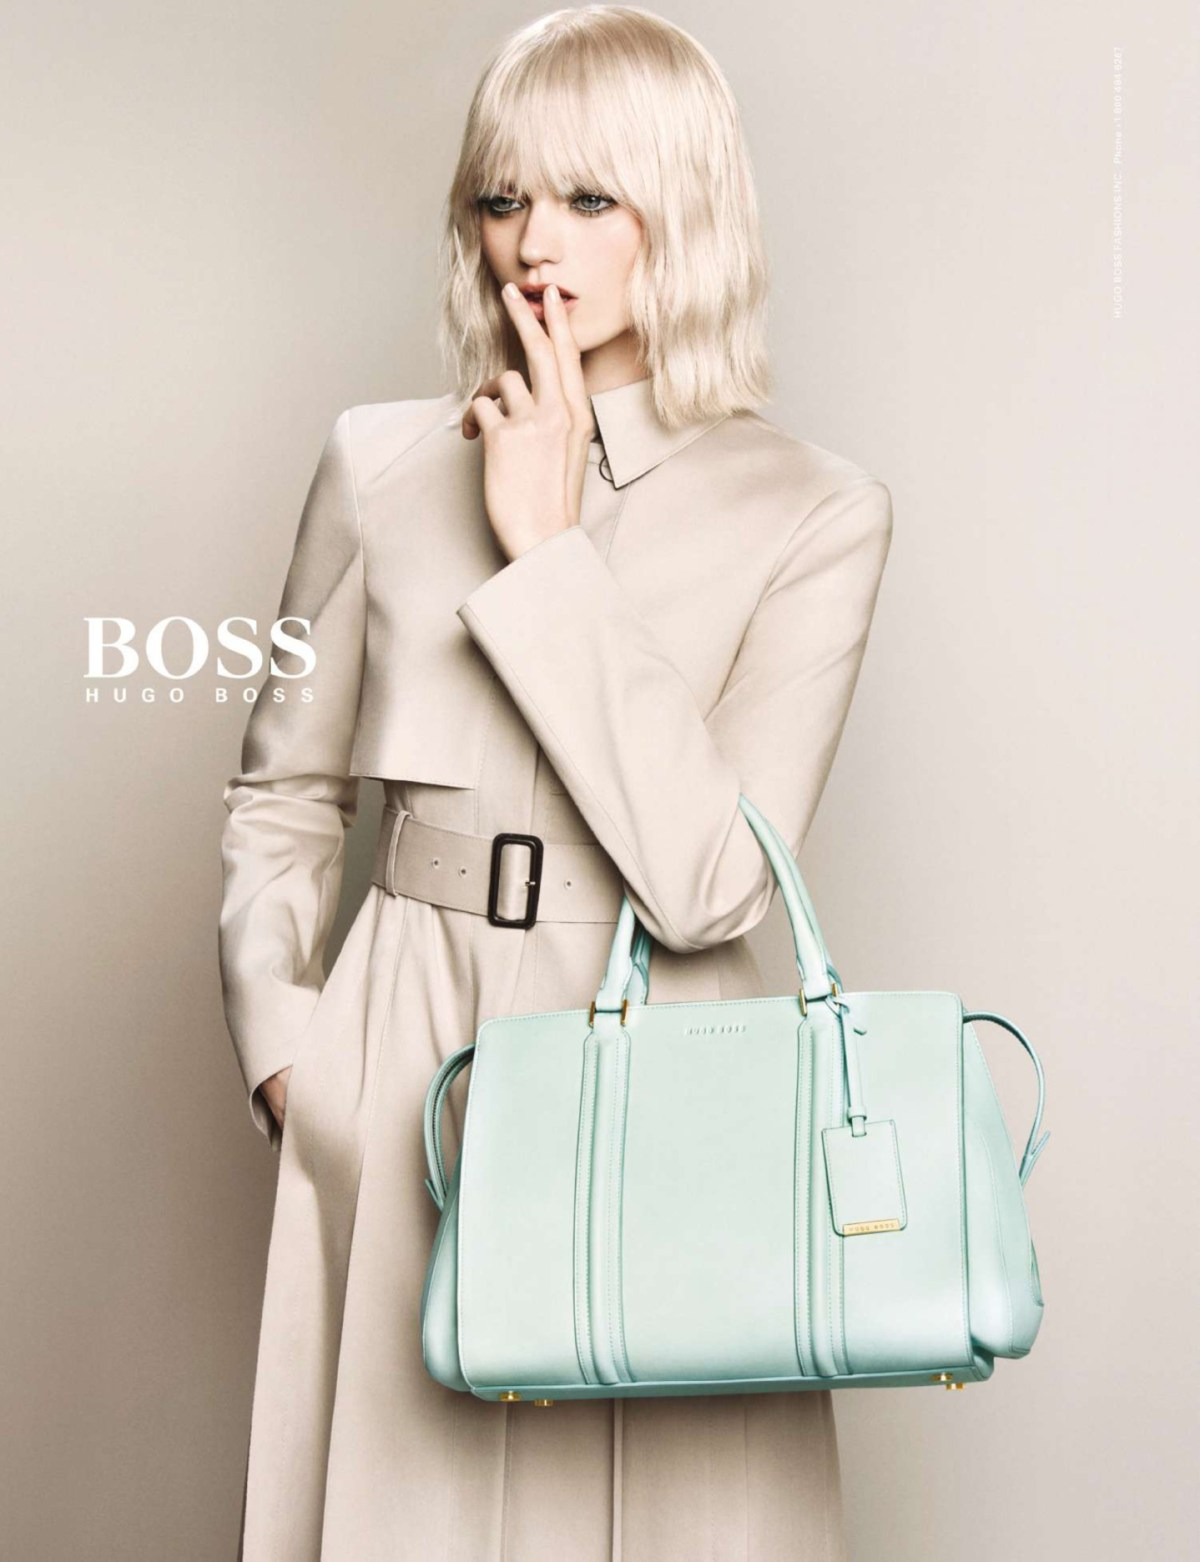 hugo-boss-spring-2015-ad-campaign-the-impression-01